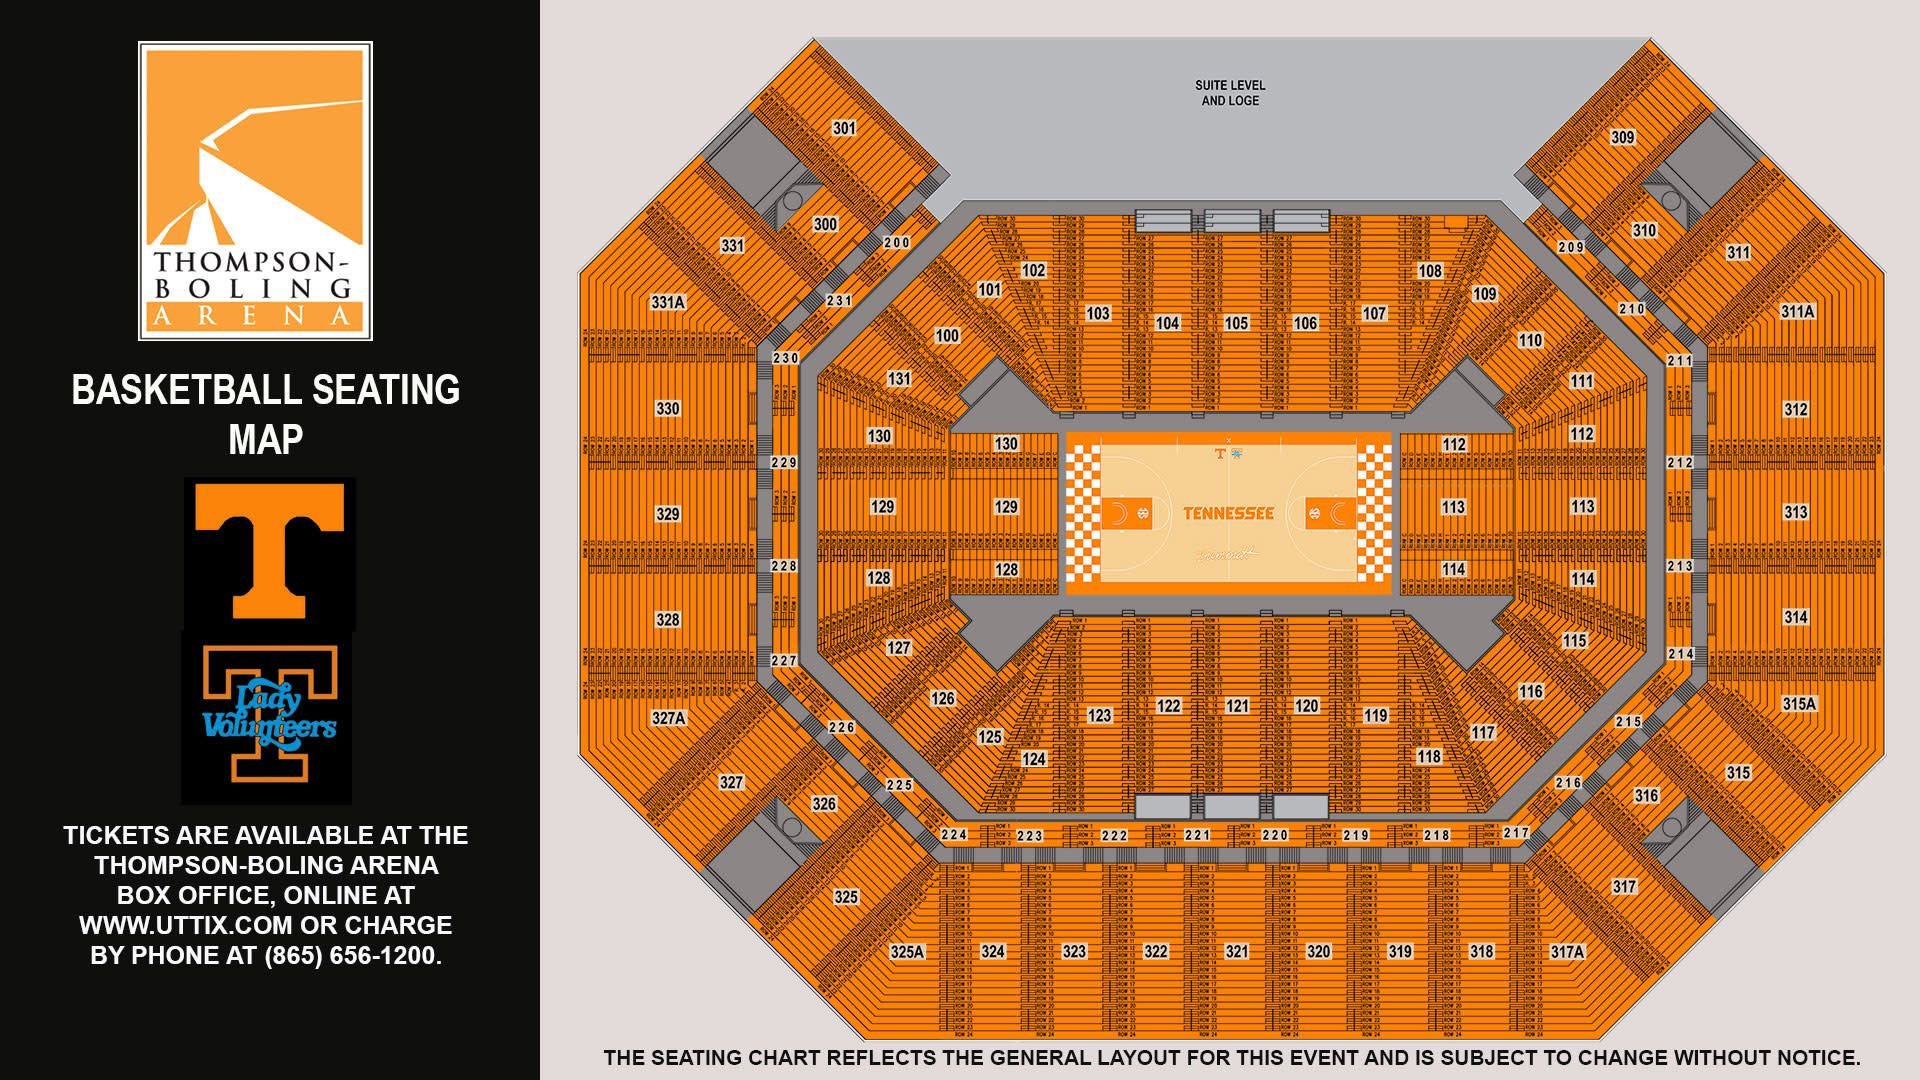 Tennessee Vols Basketball Seating Chart in 2020 Vols